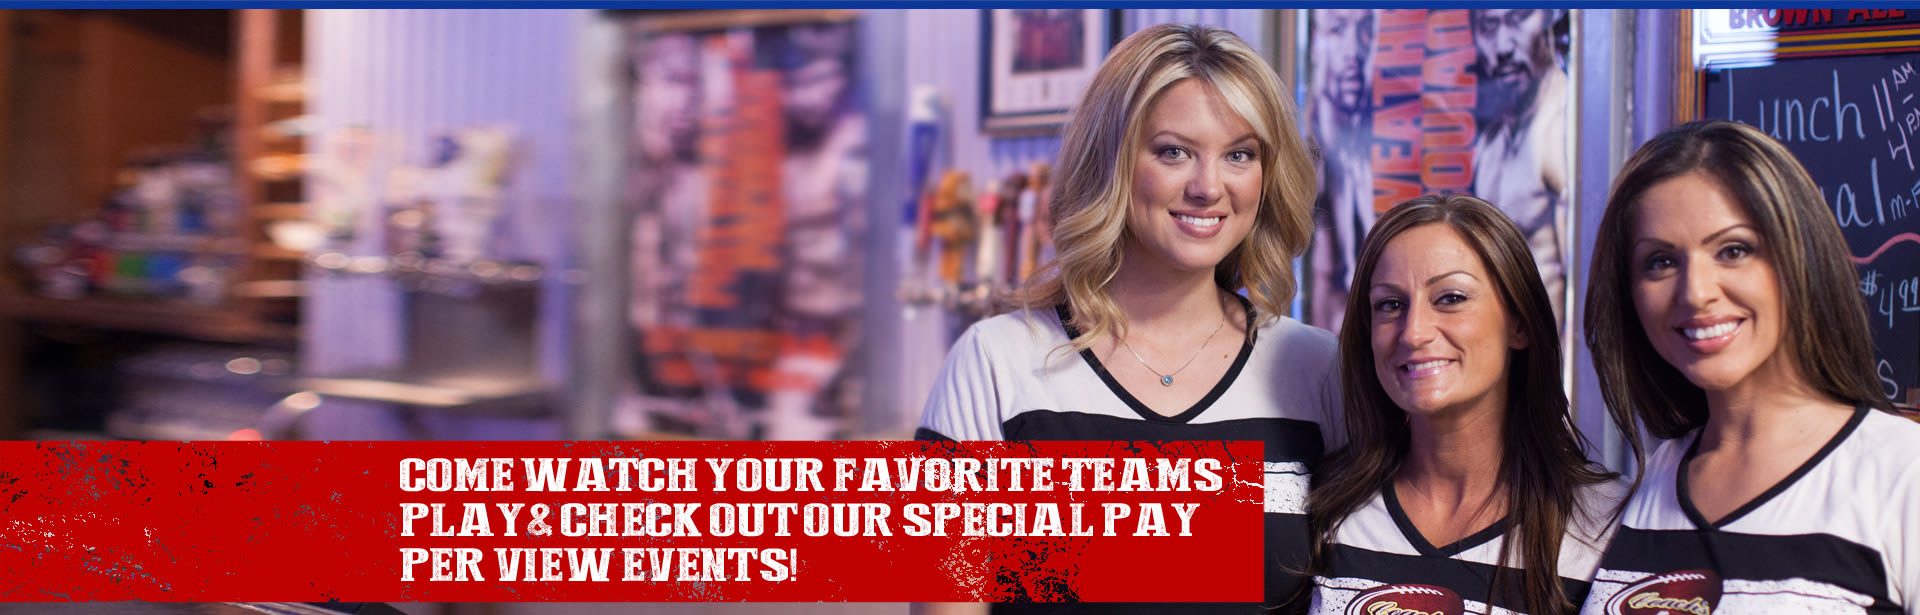 come watch your favorite teams play & check out our special pay per view events